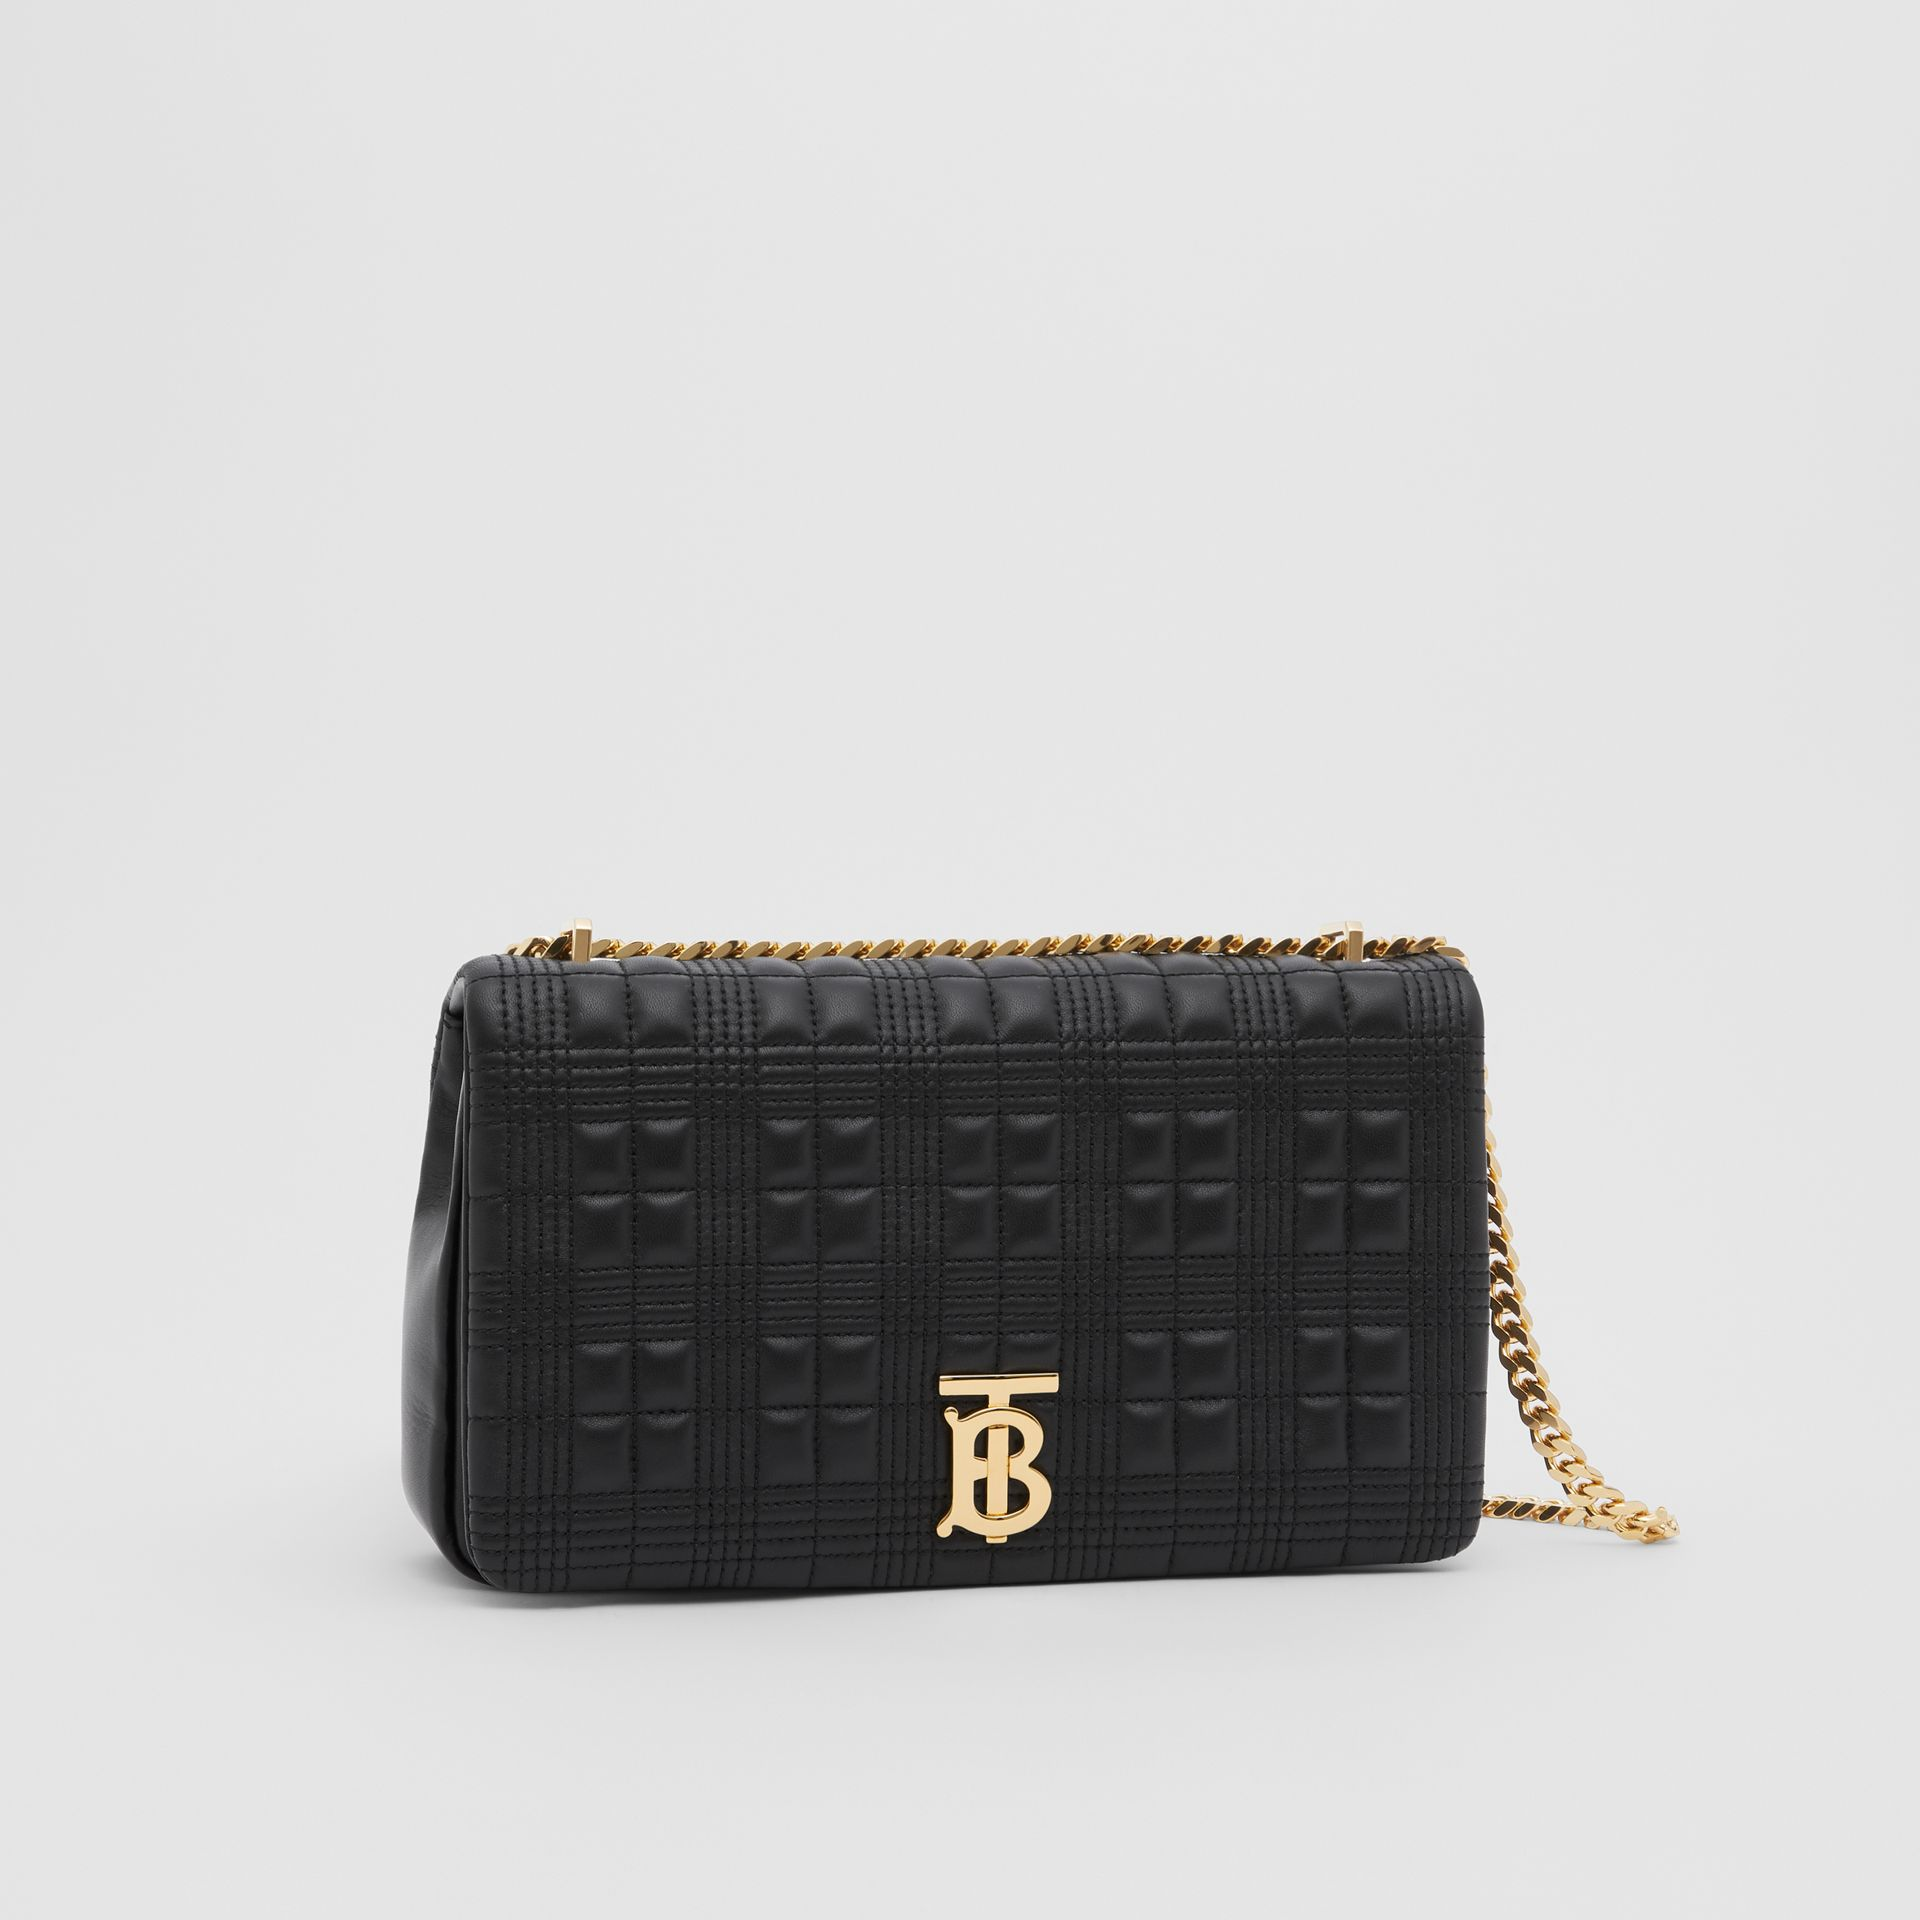 Medium Quilted Lambskin Lola Bag in Black - Women | Burberry Hong Kong S.A.R - gallery image 4